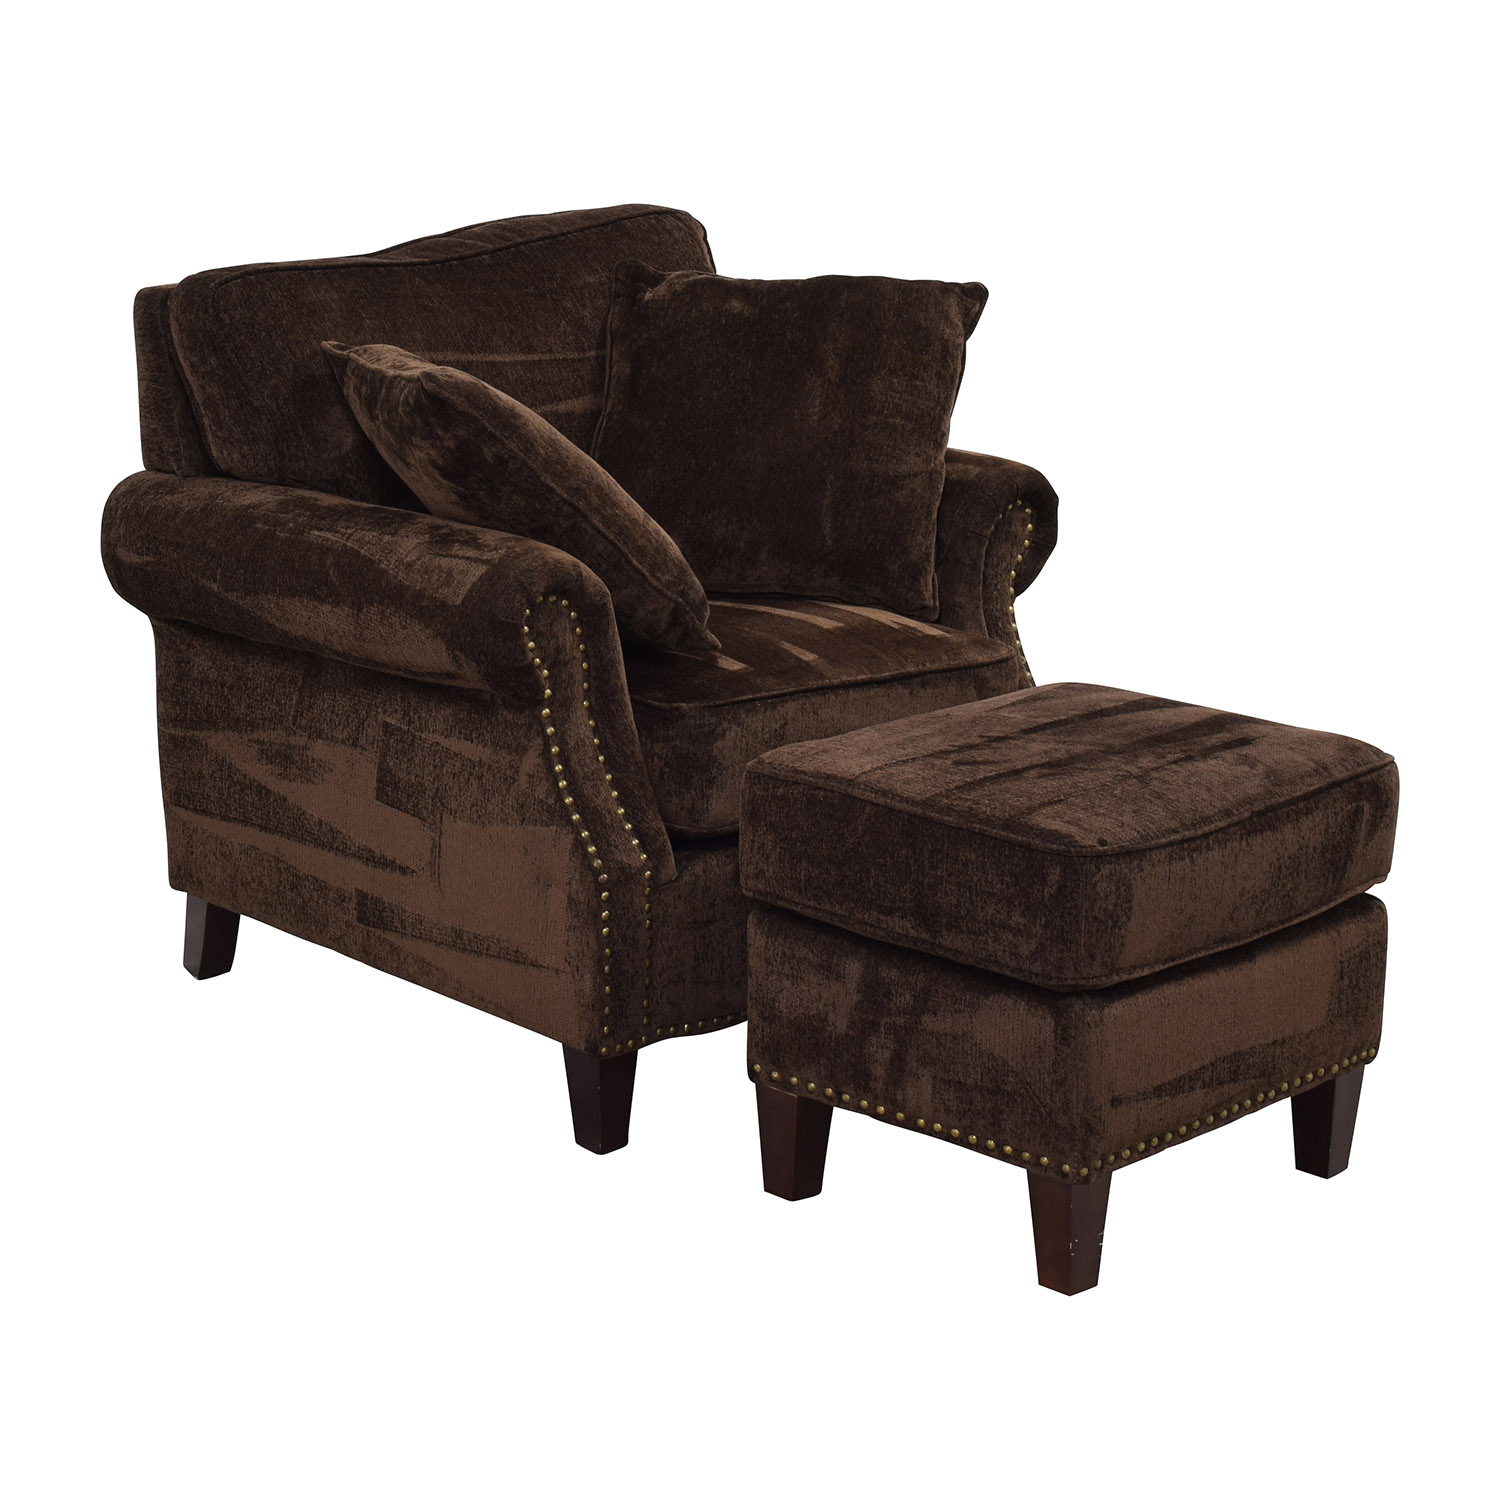 brown leather studded sofa wooden design indian chair sofas sectionals target thesofa